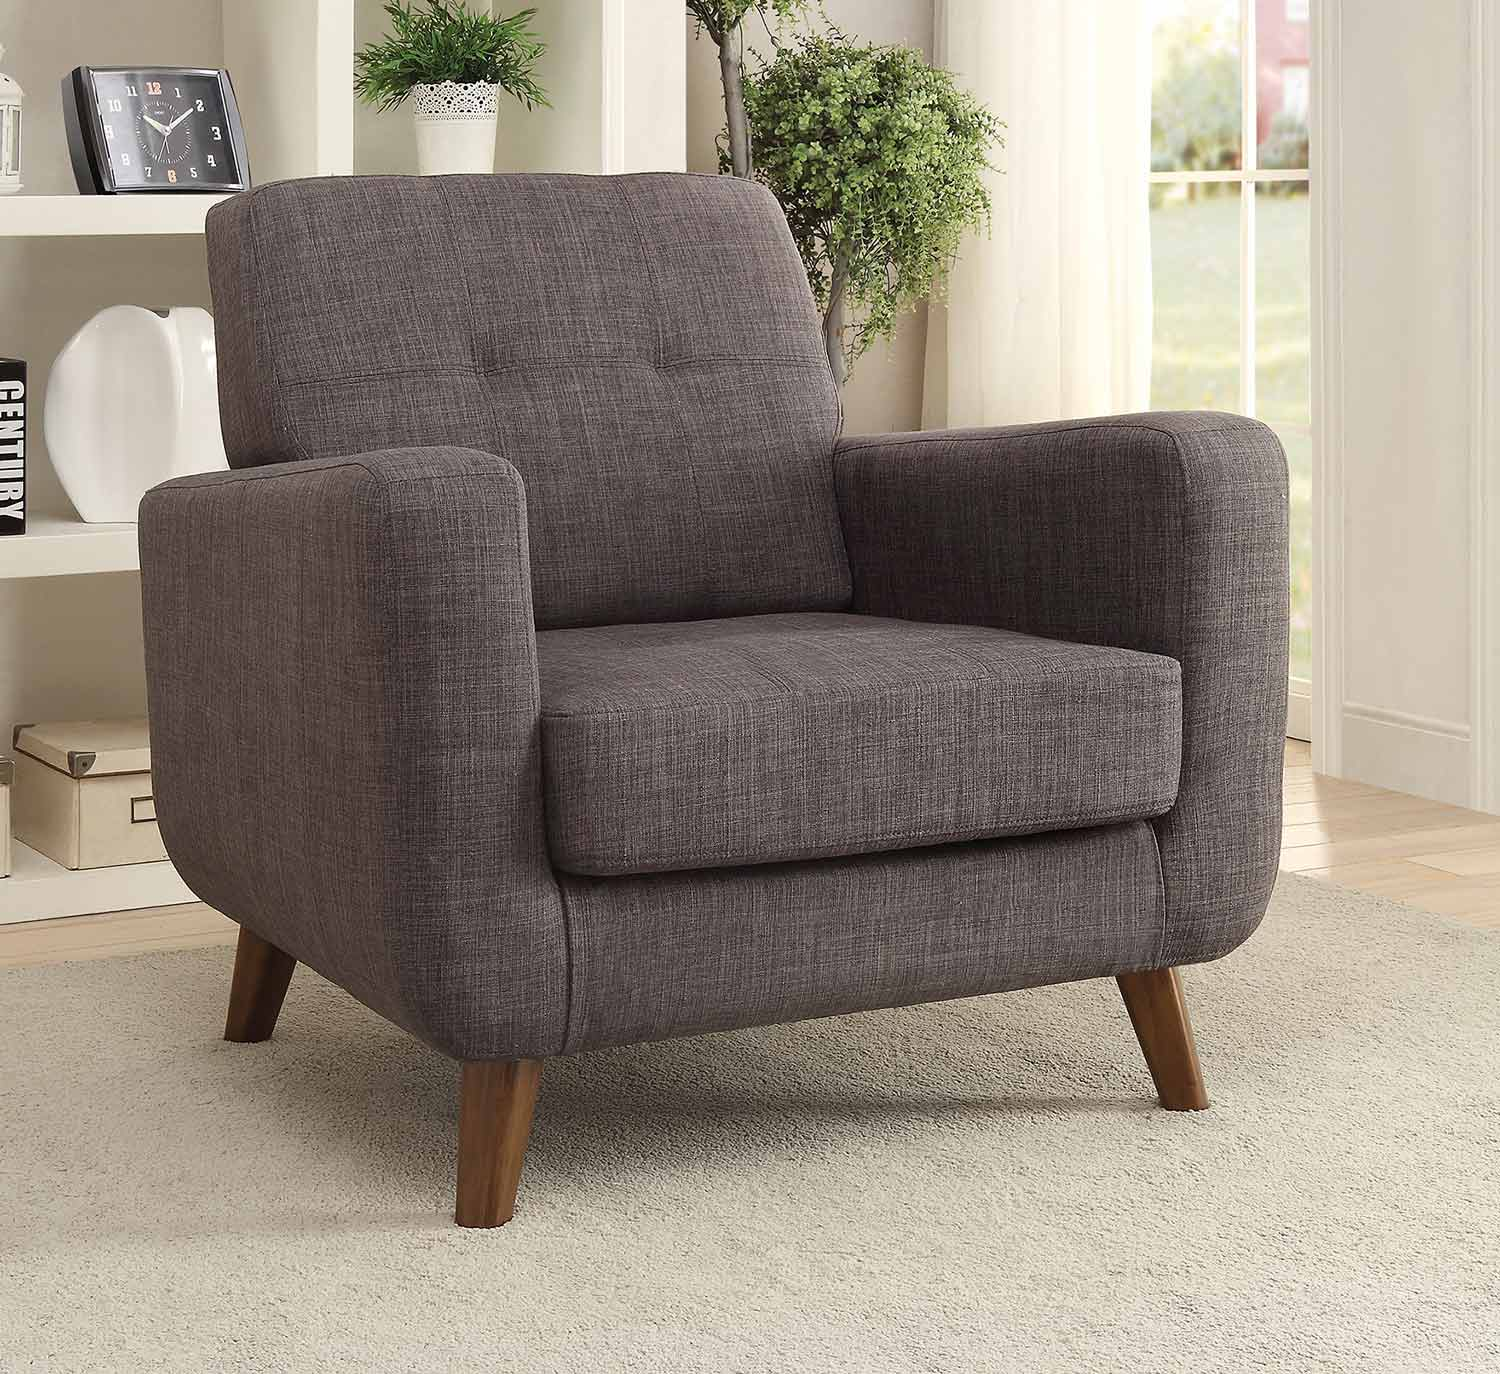 Coaster 902481 Accent Chair - Grey